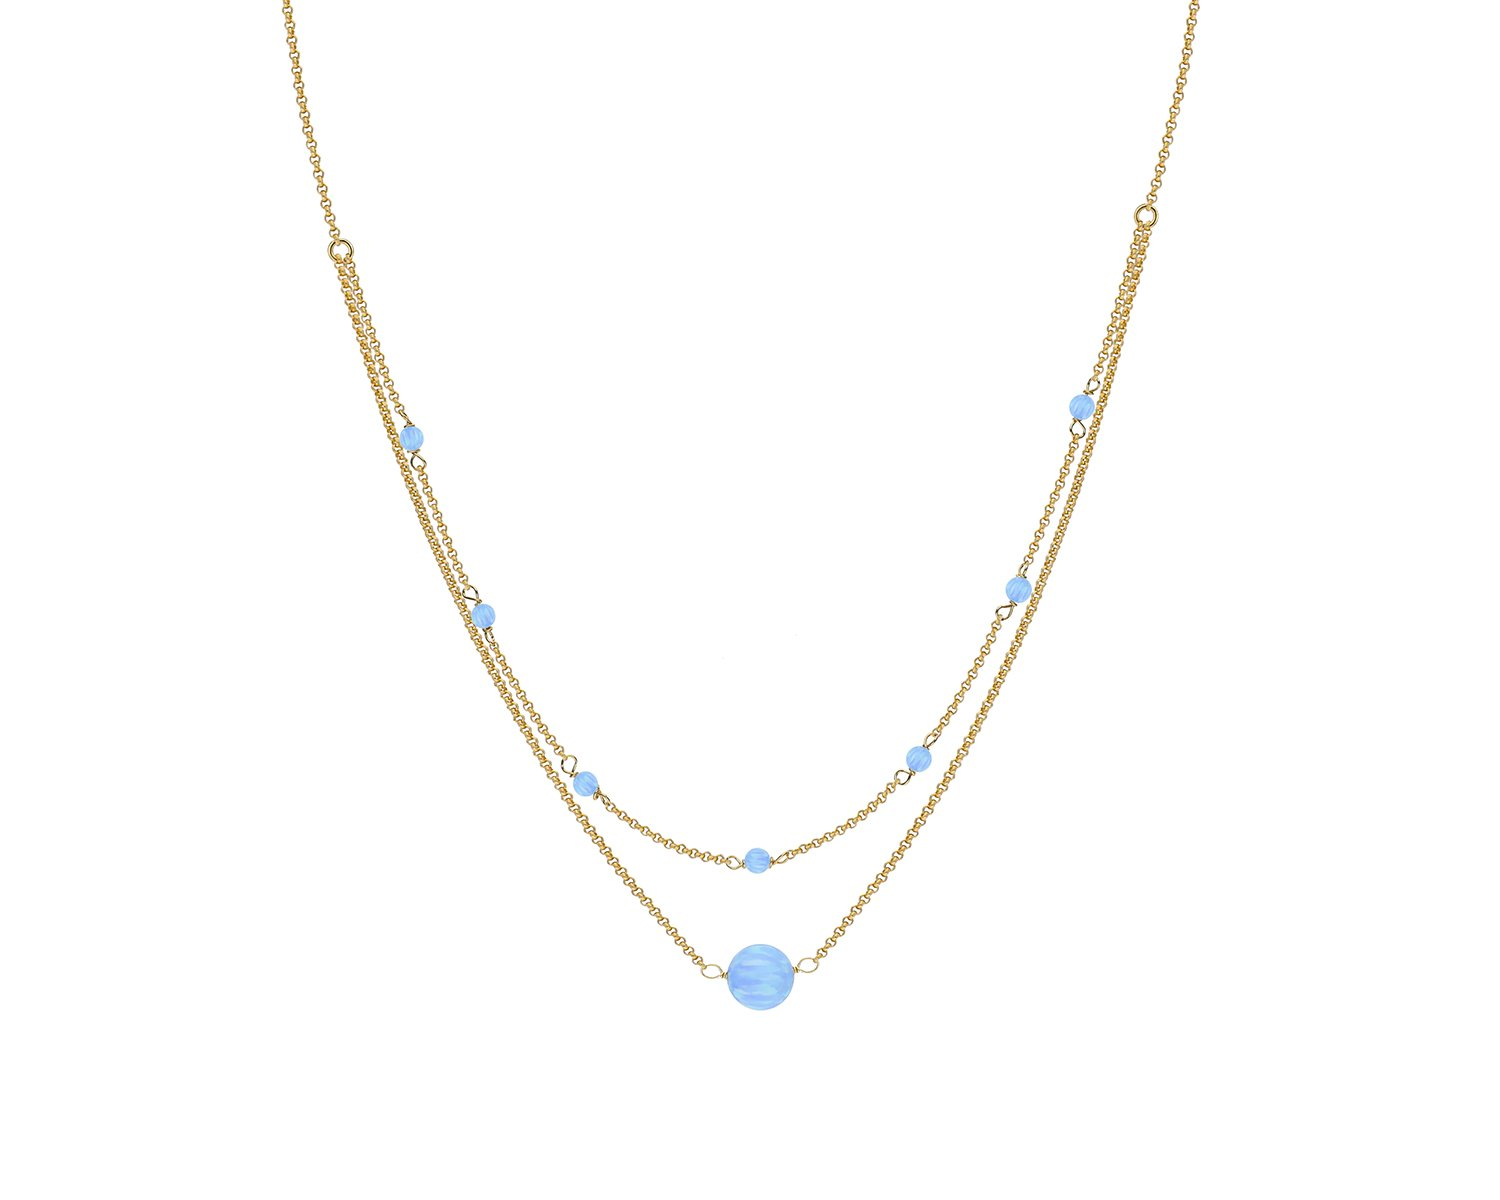 Gold Plated Sterling Silver Double Strand Blue Opal Choker Necklace